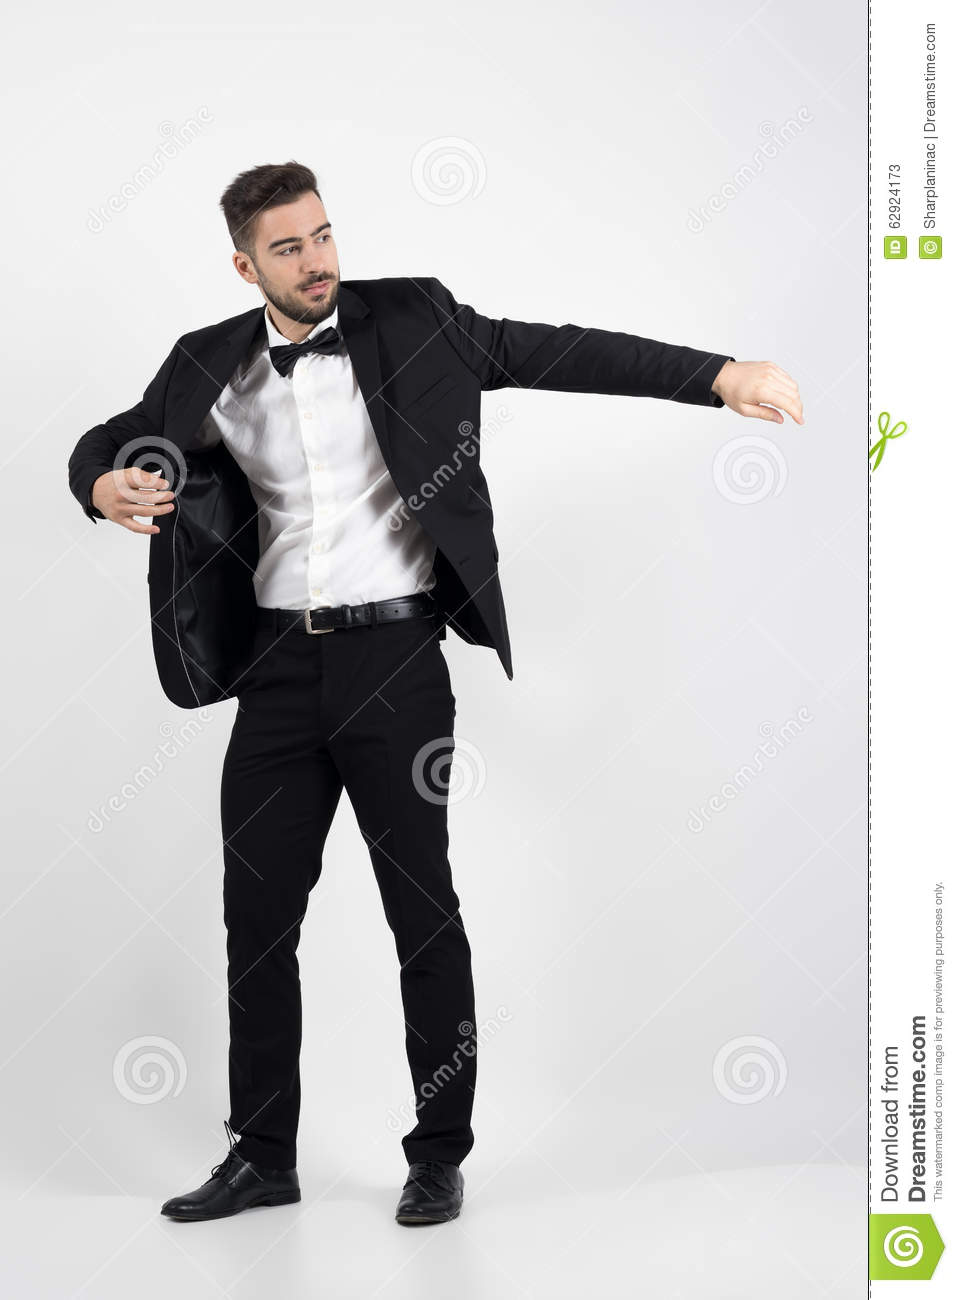 Young Man Putting On Black Suit Tuxedo Coat. Stock Image